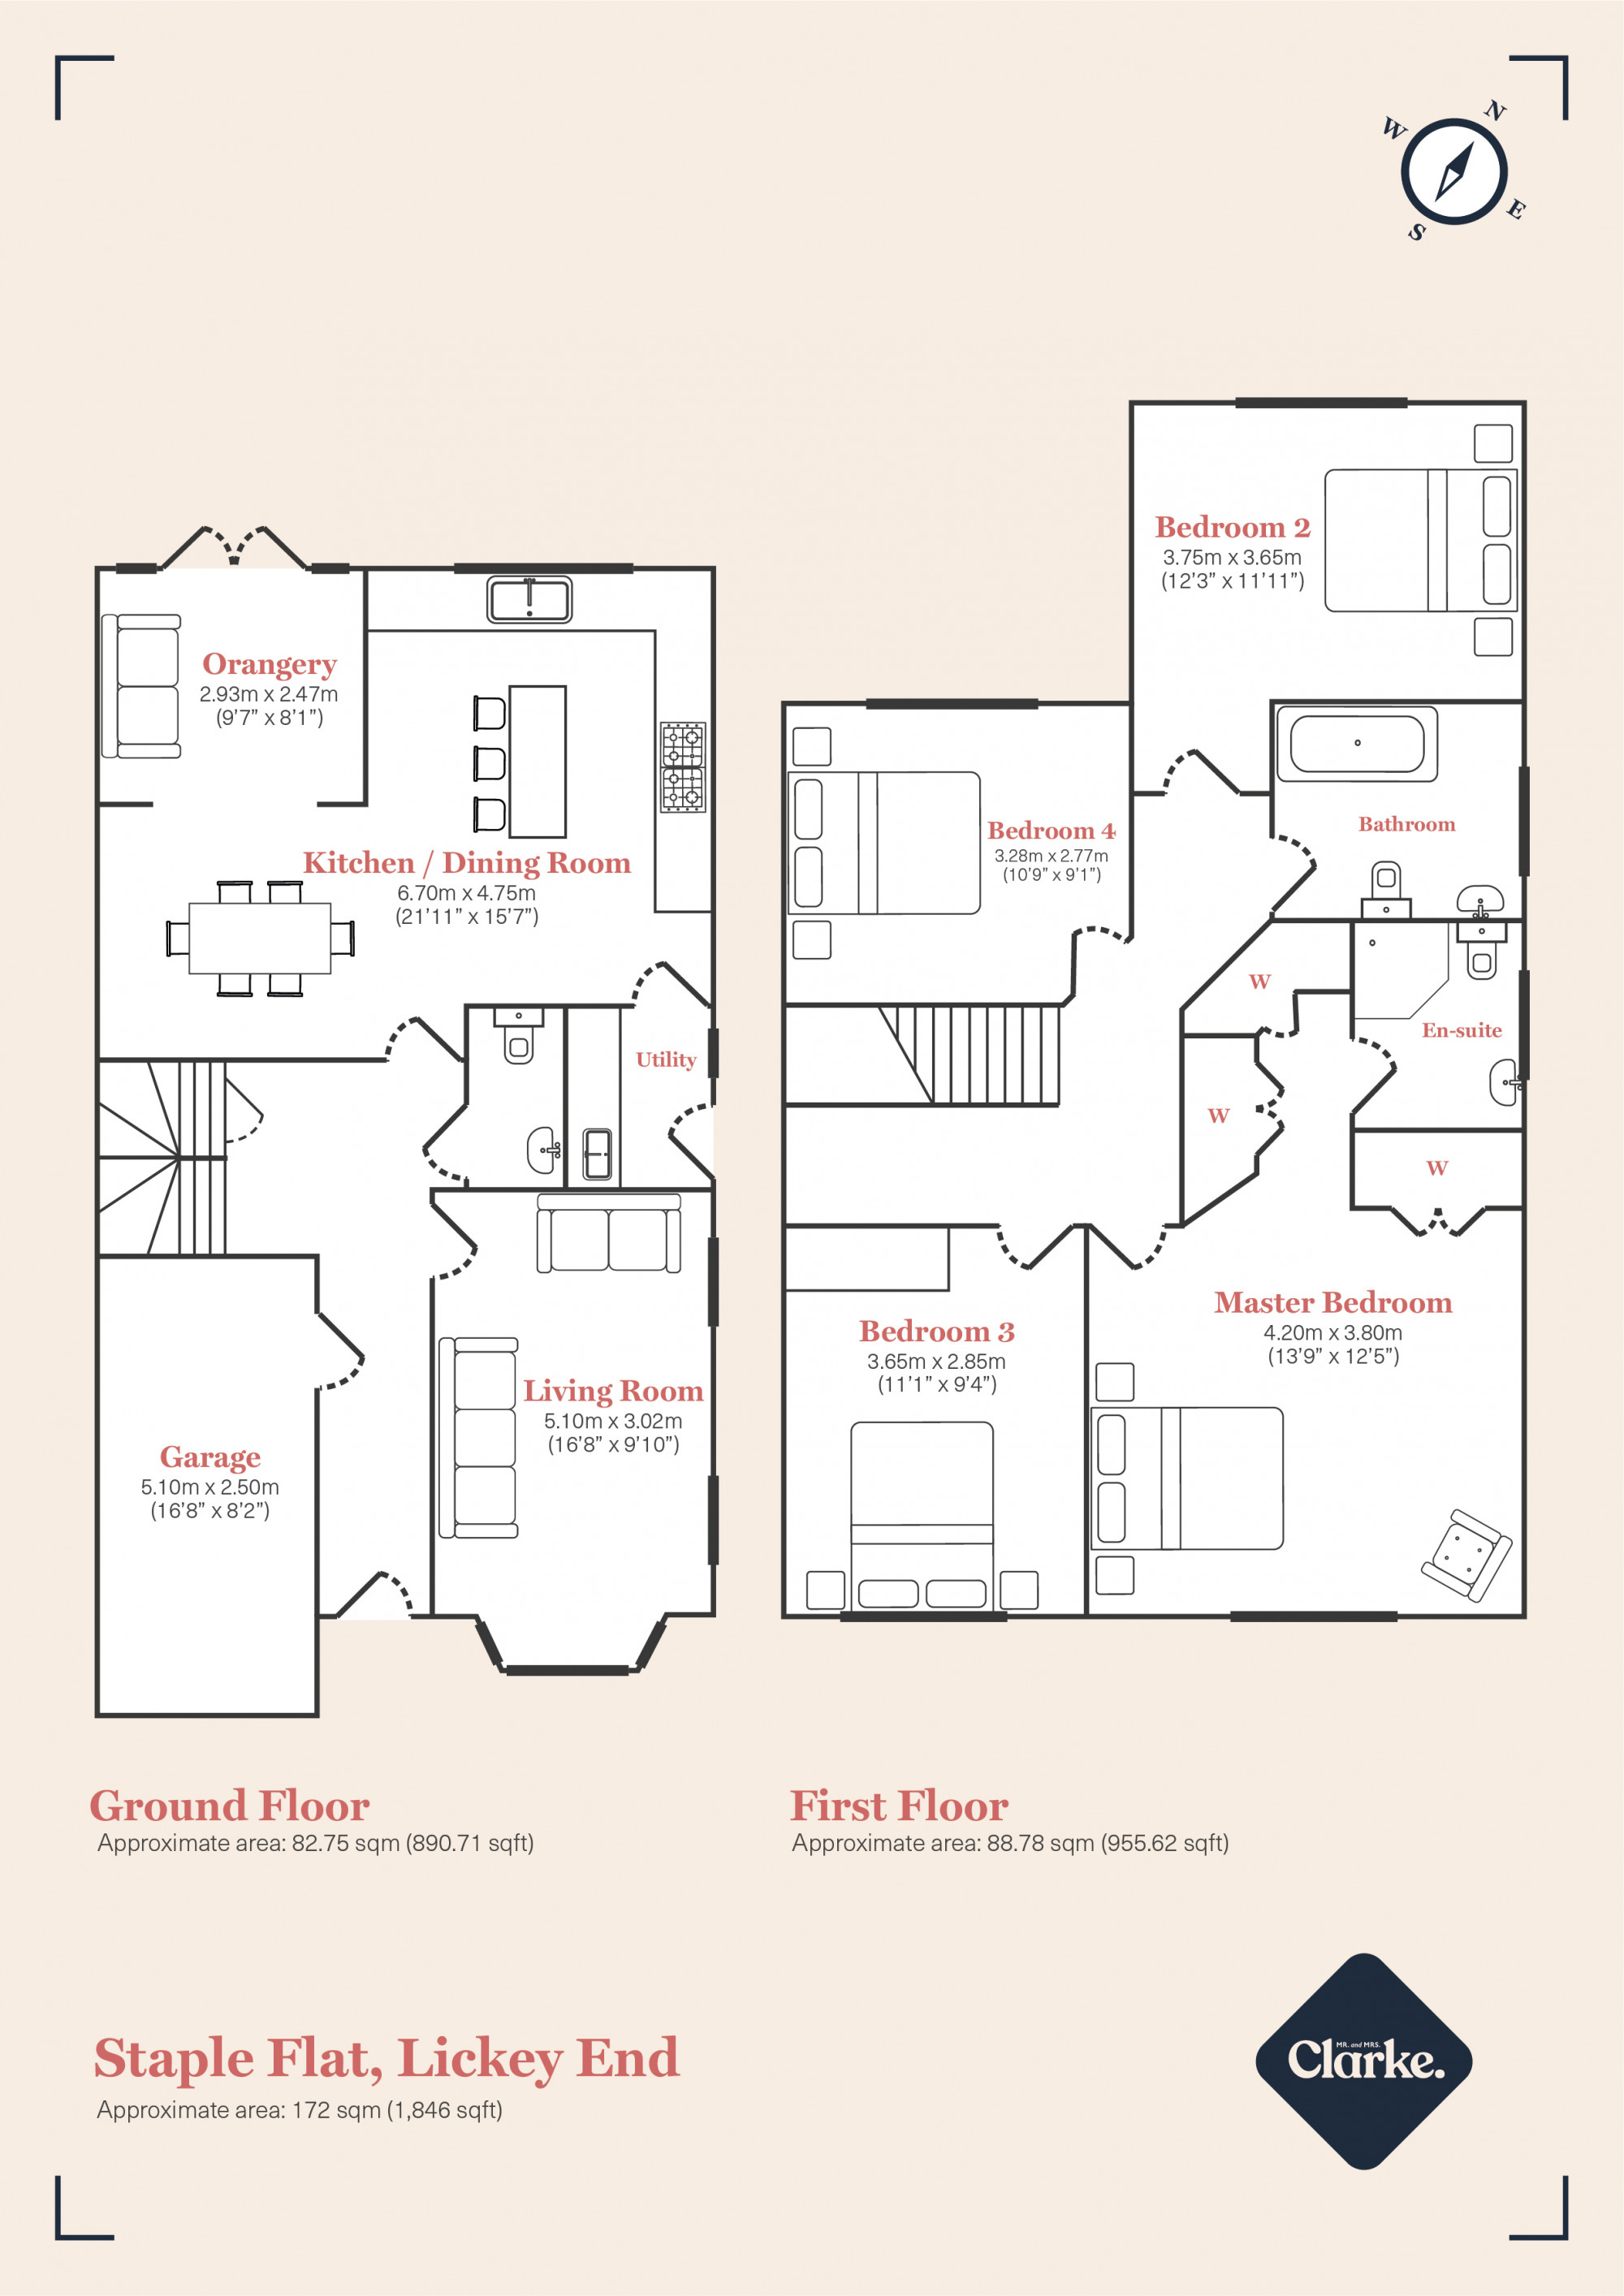 Field View, Lickey End. Floorplan.